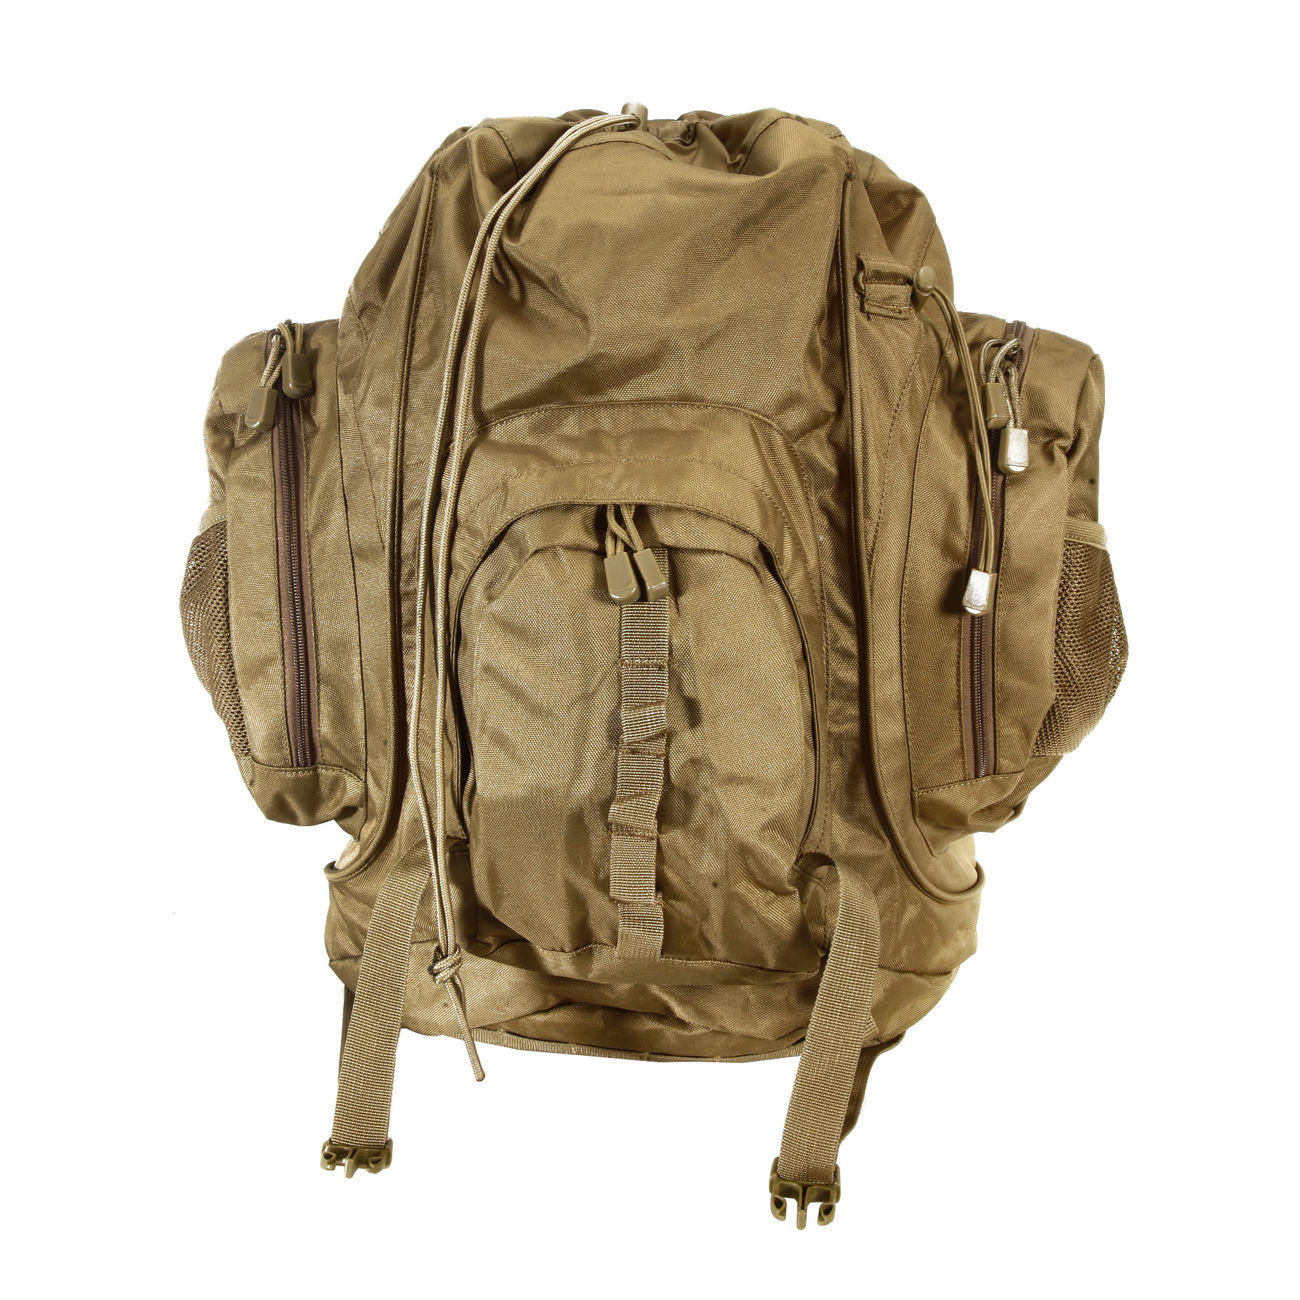 Defcon 5 Tactical Assault Rucksack Hydro 50L coyote tan 5